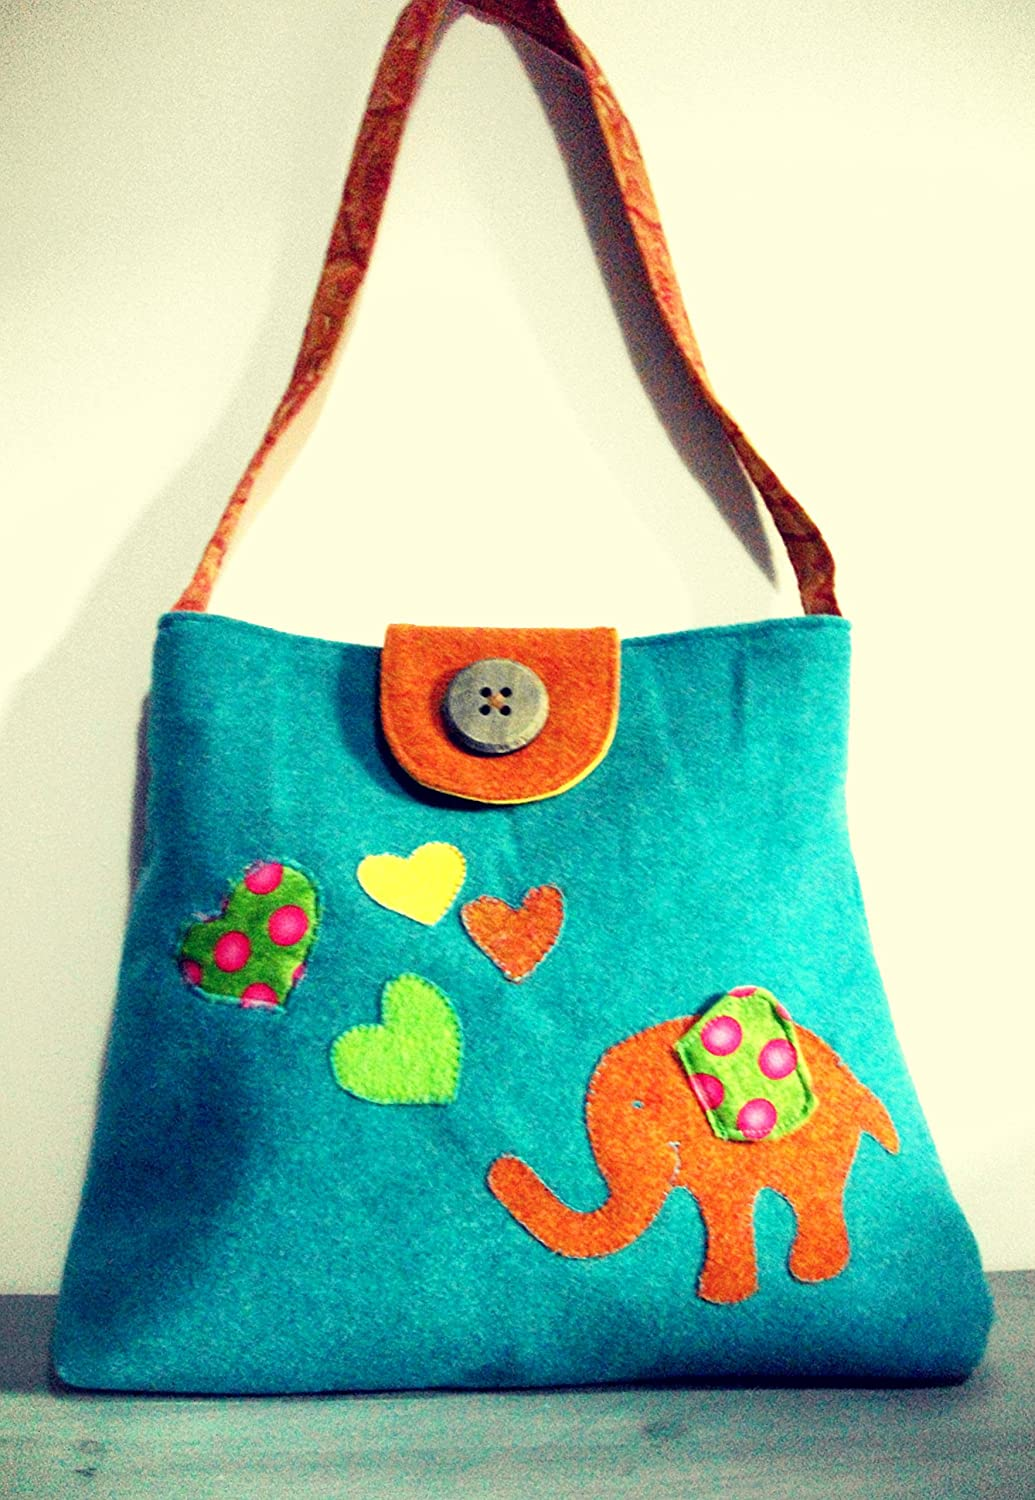 Diaper bag, Changing bag in Felt and cotton Batik with Elephant and hearts